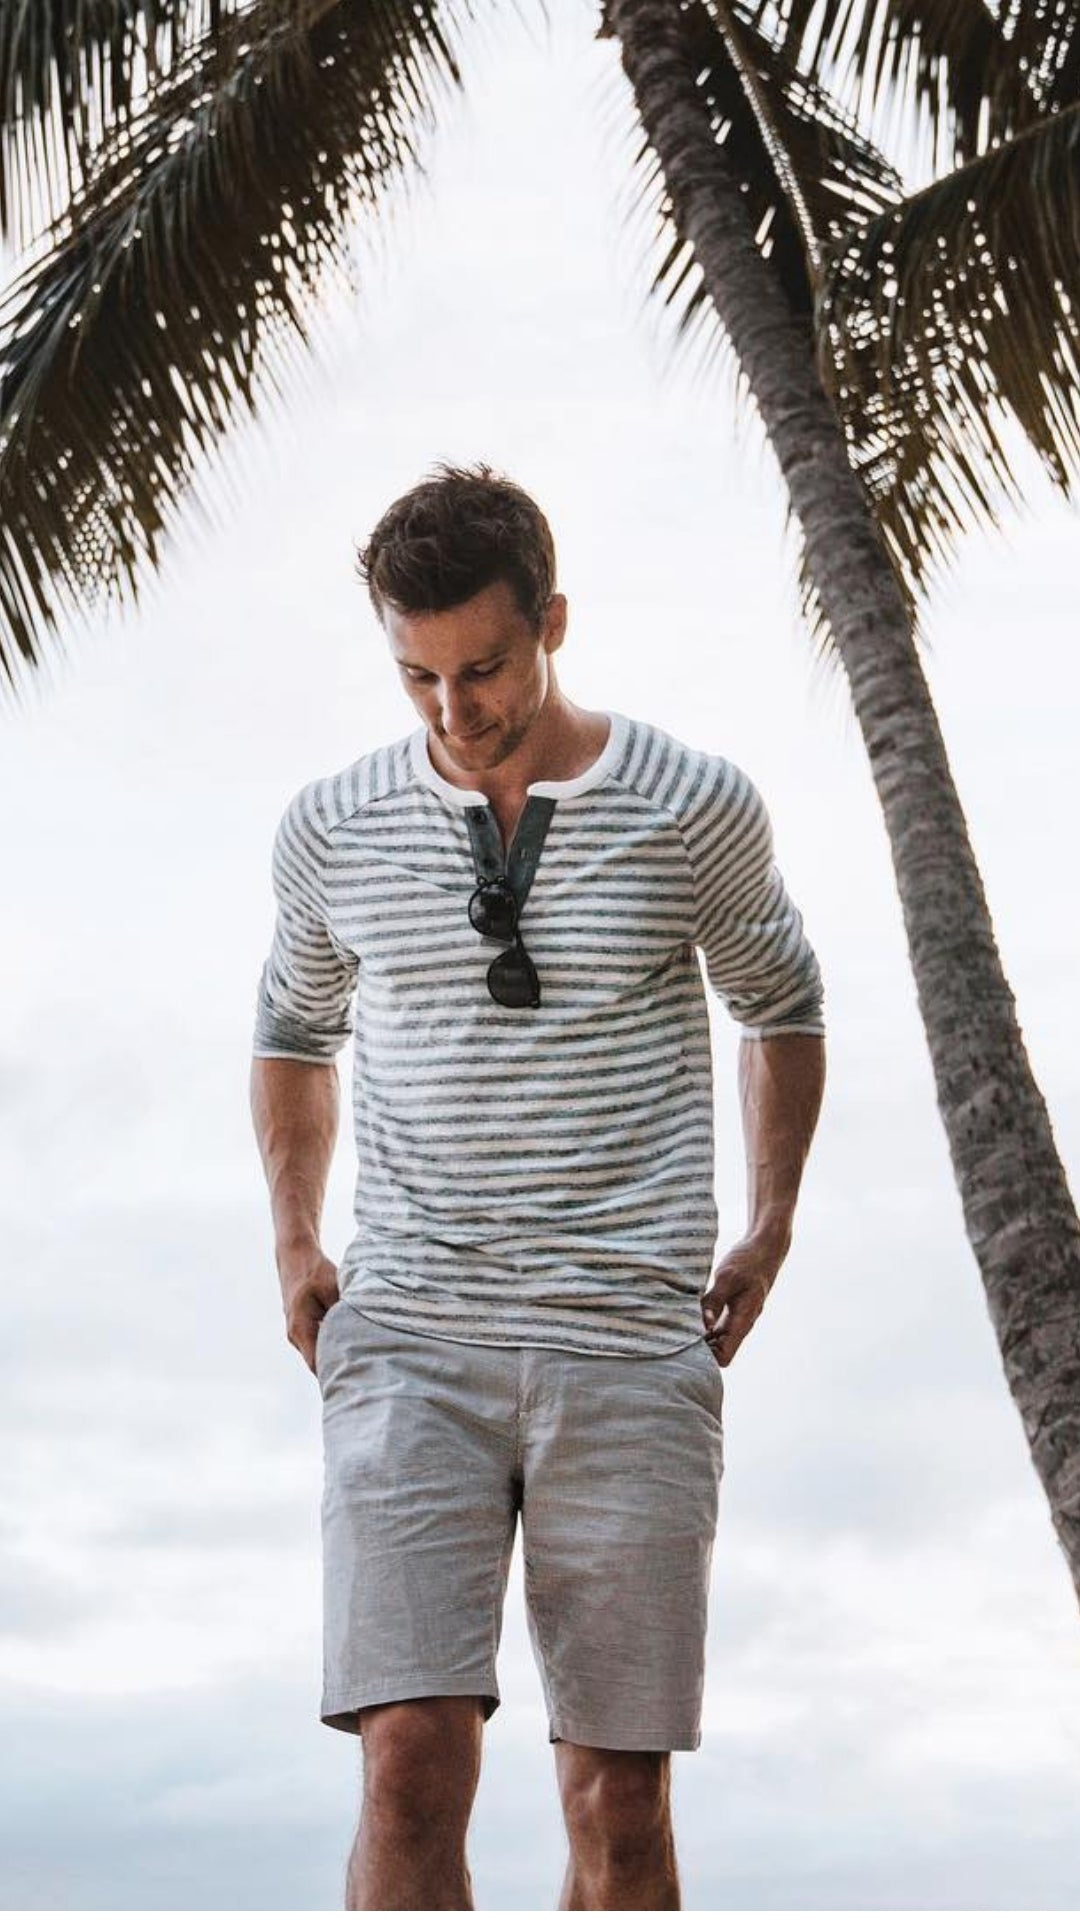 5 Shorts Outfits For Men #shorts #mensfashion